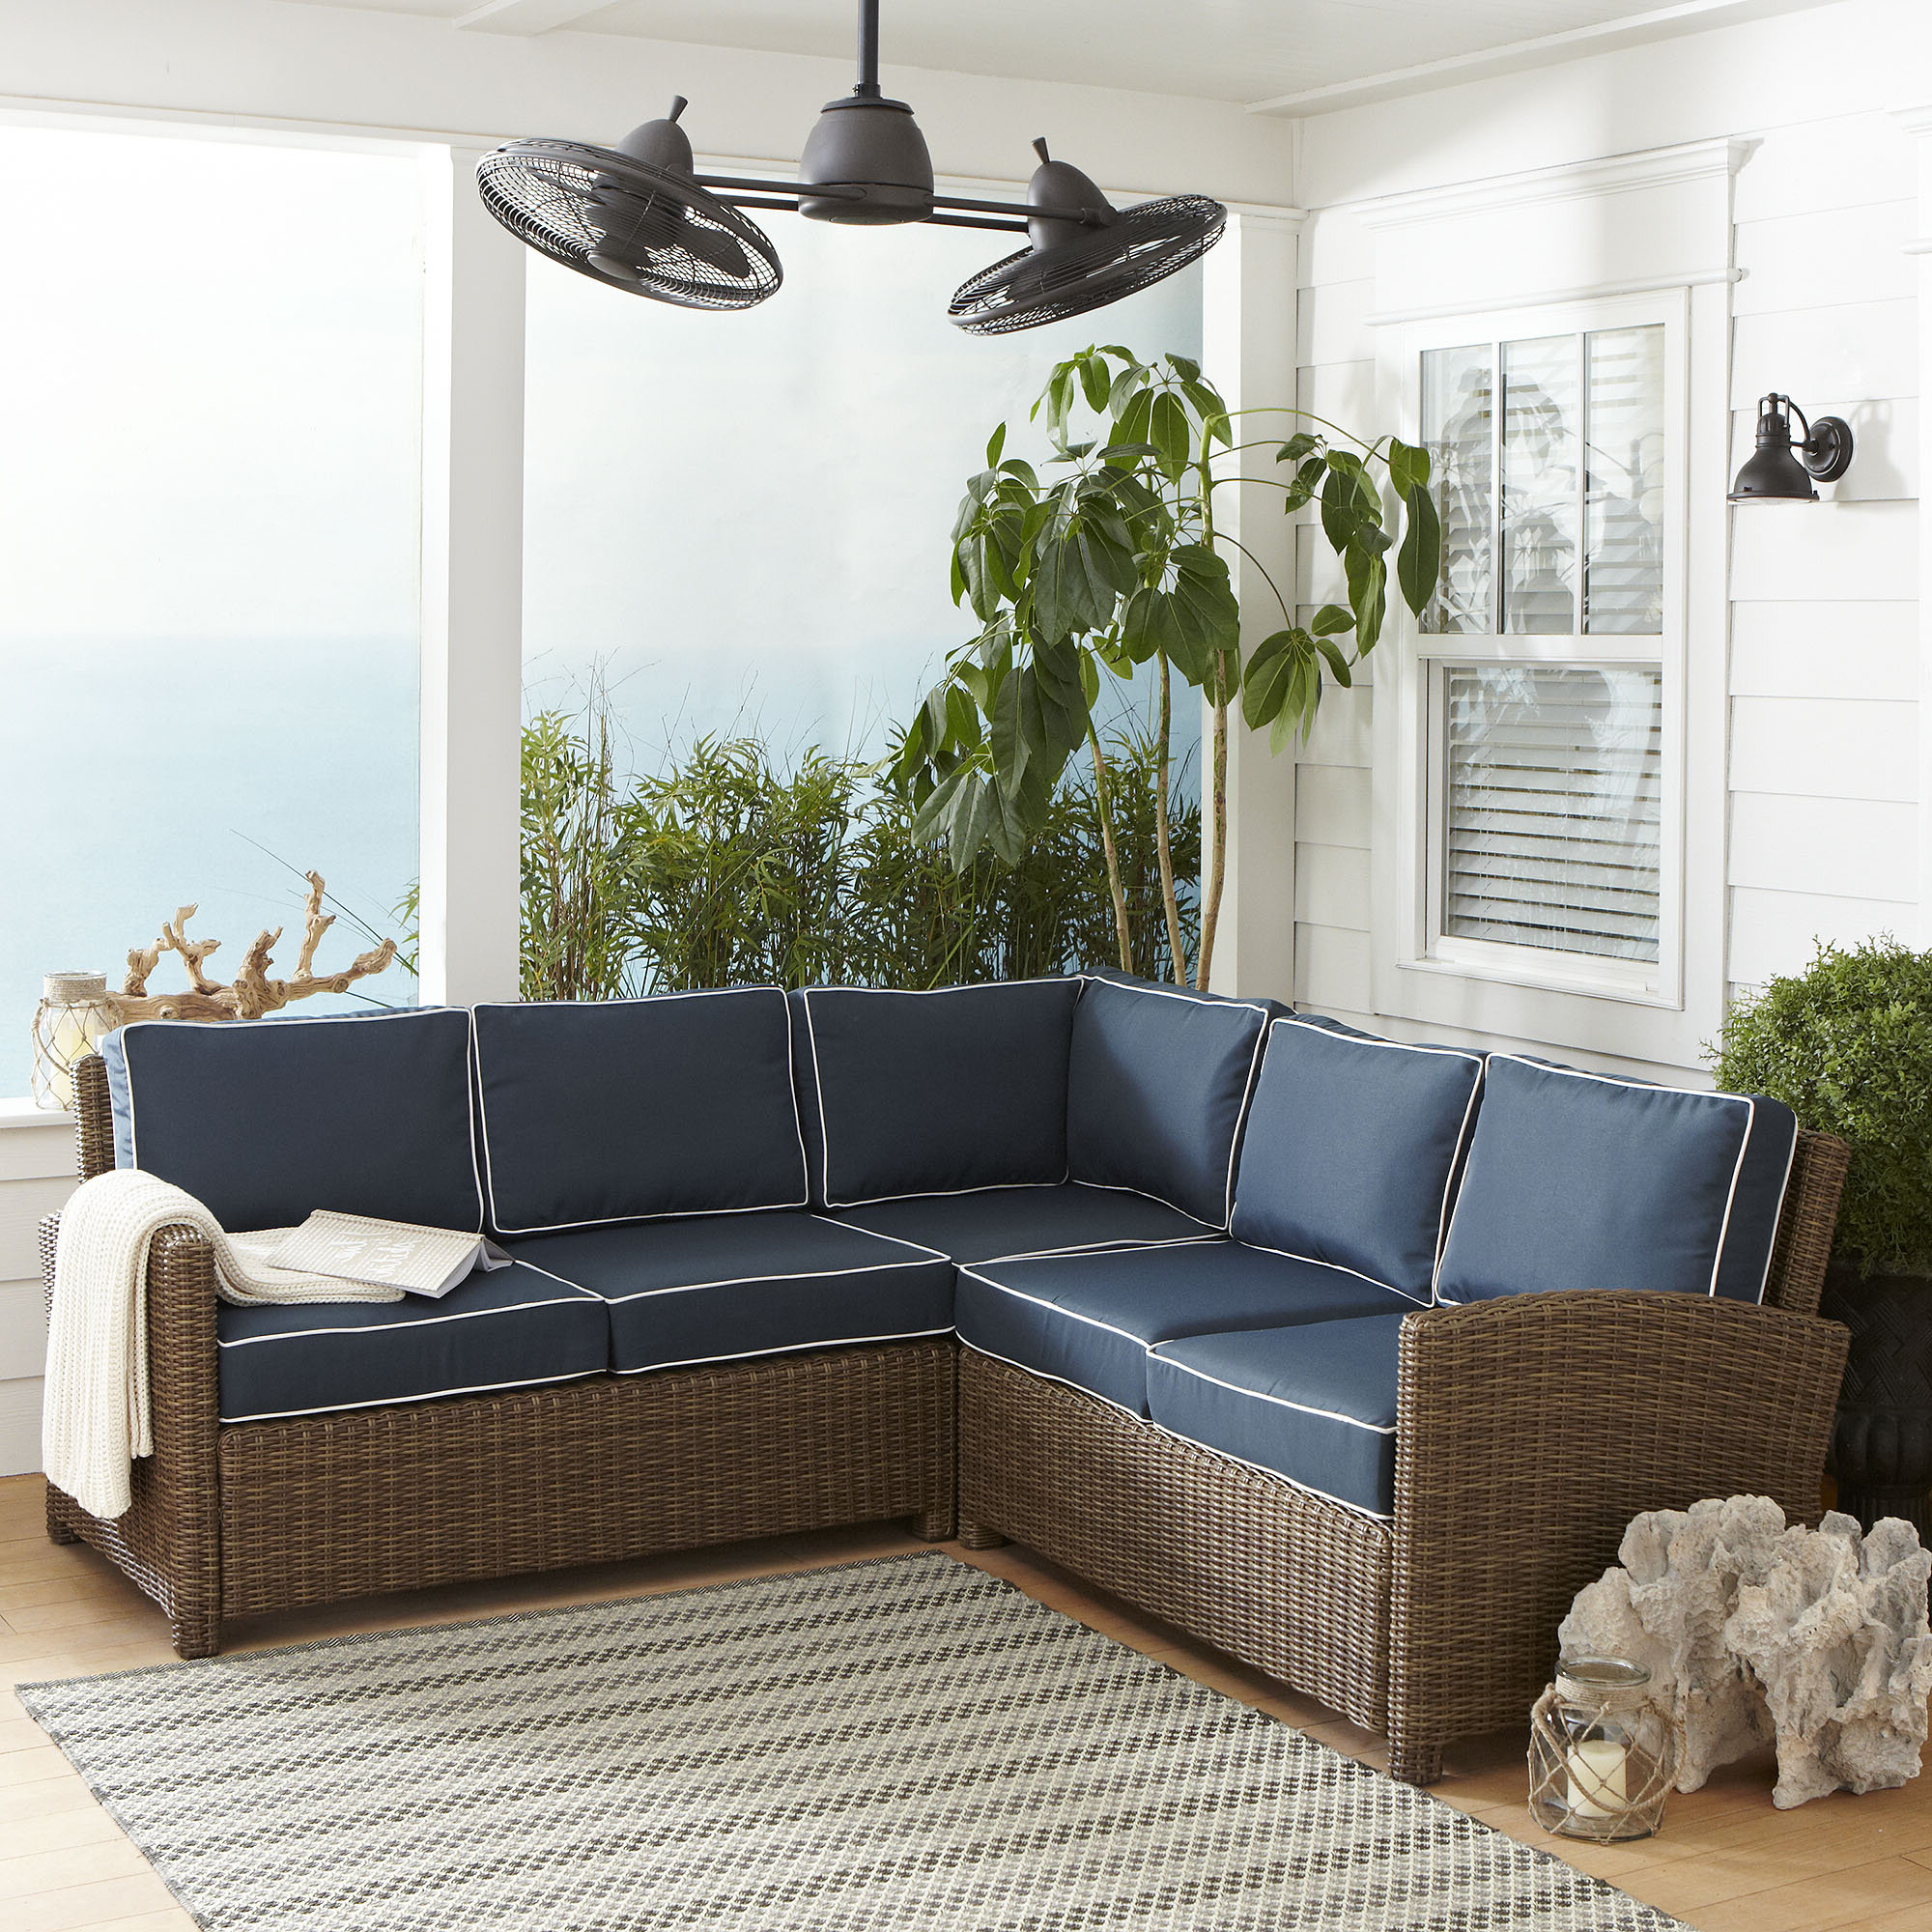 Well Liked Lawson Patio Sectional With Cushions Within Lawson Patio Sofas With Cushions (View 6 of 25)